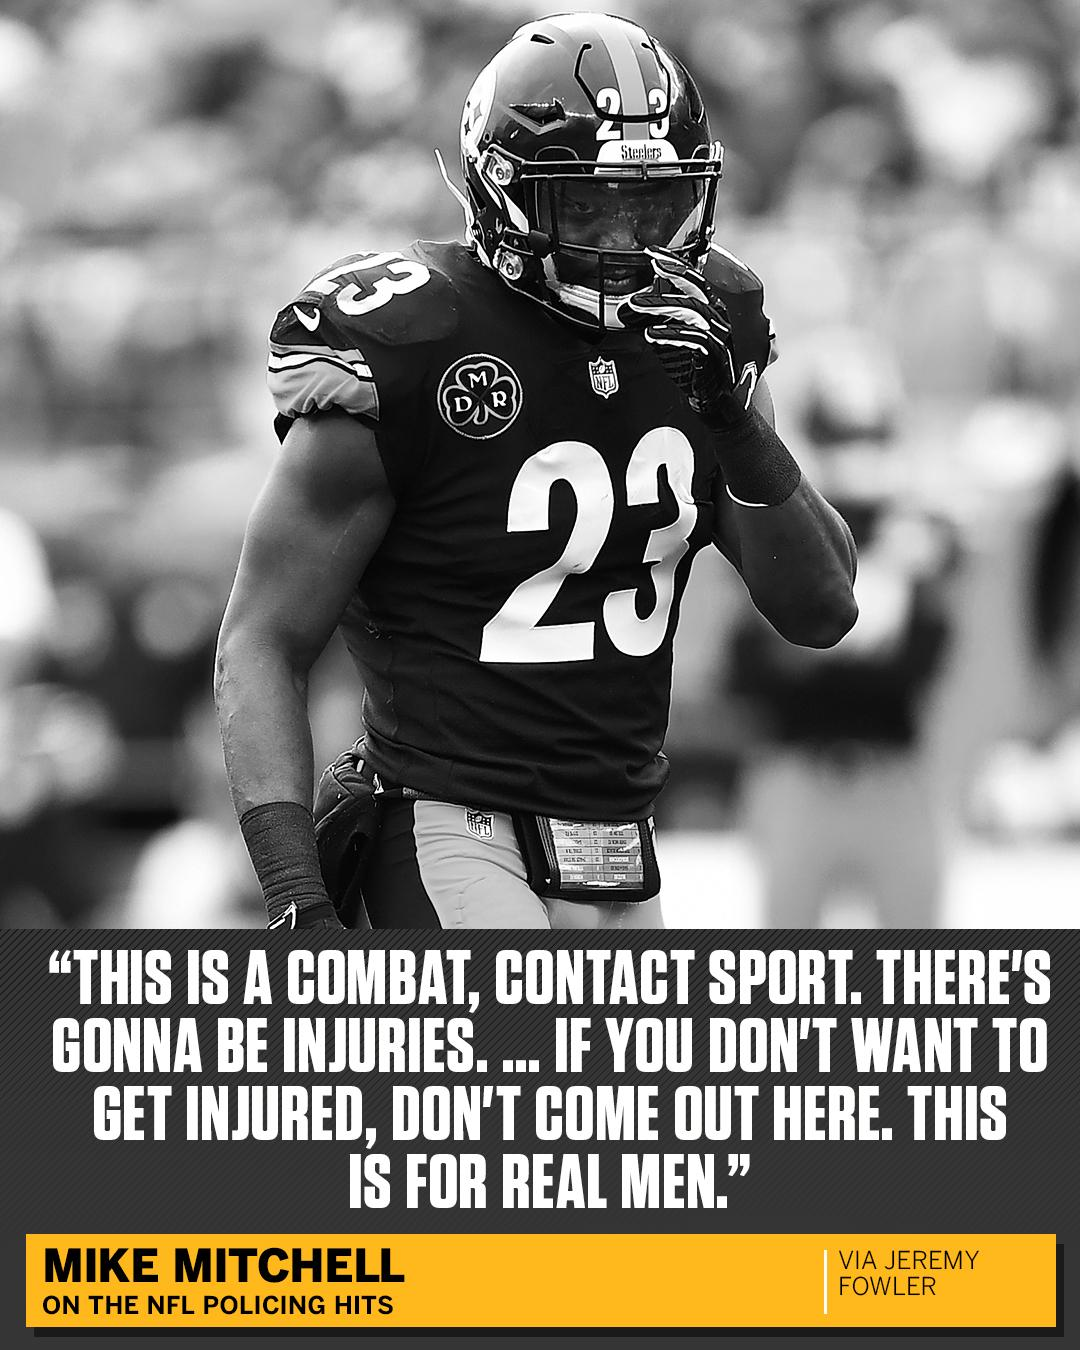 Mike Mitchell didn't hold back when asked about the NFL cracking down on hits. https://t.co/87dBoSKfyZ